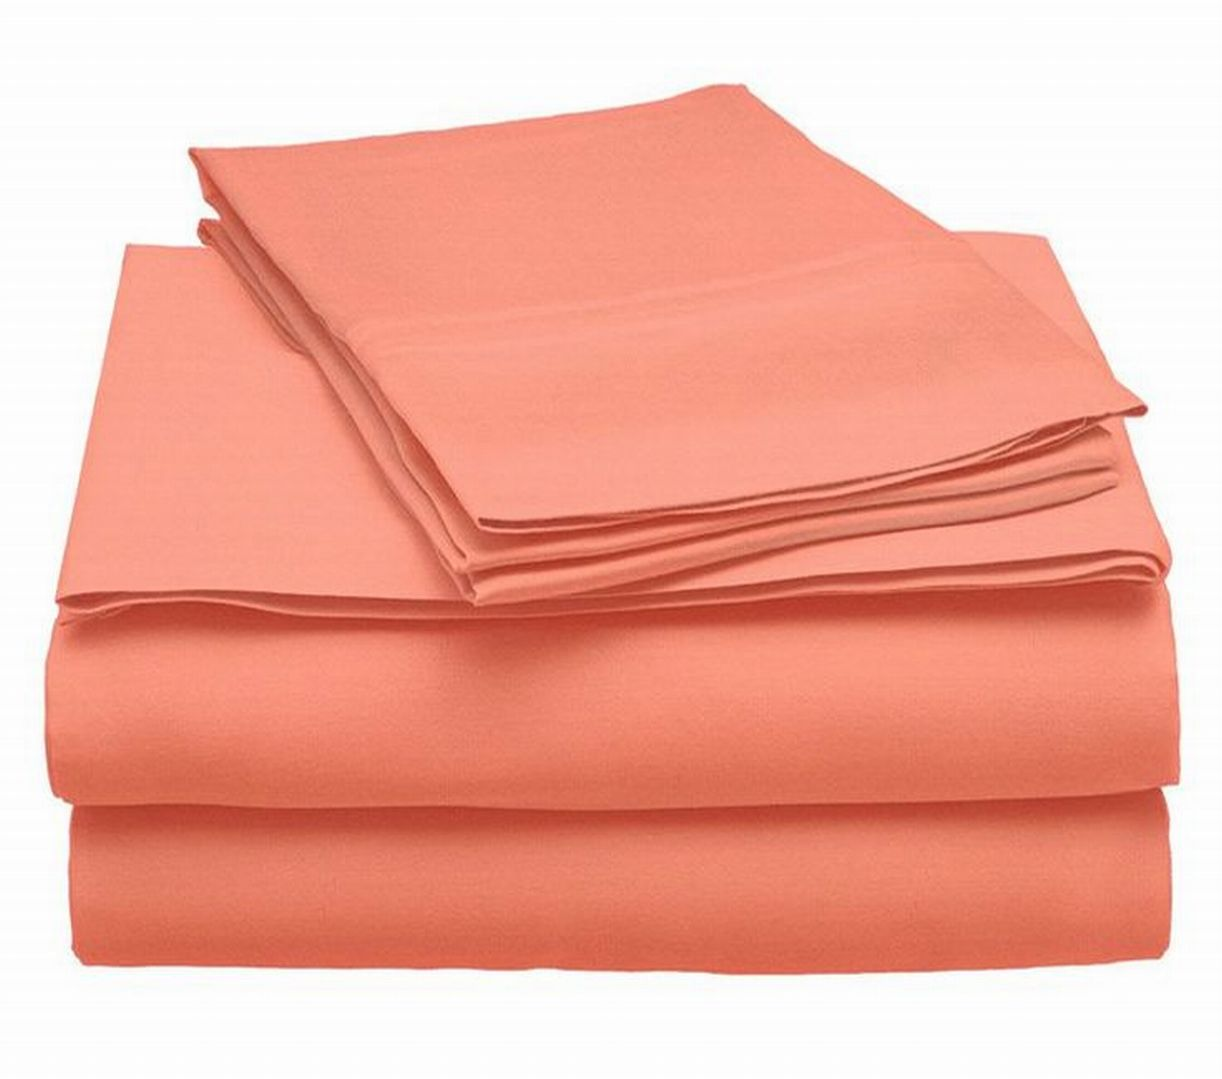 Room Essentials Sheet Set Pretty Peach Full Bed Sheets Easy Care Bedding